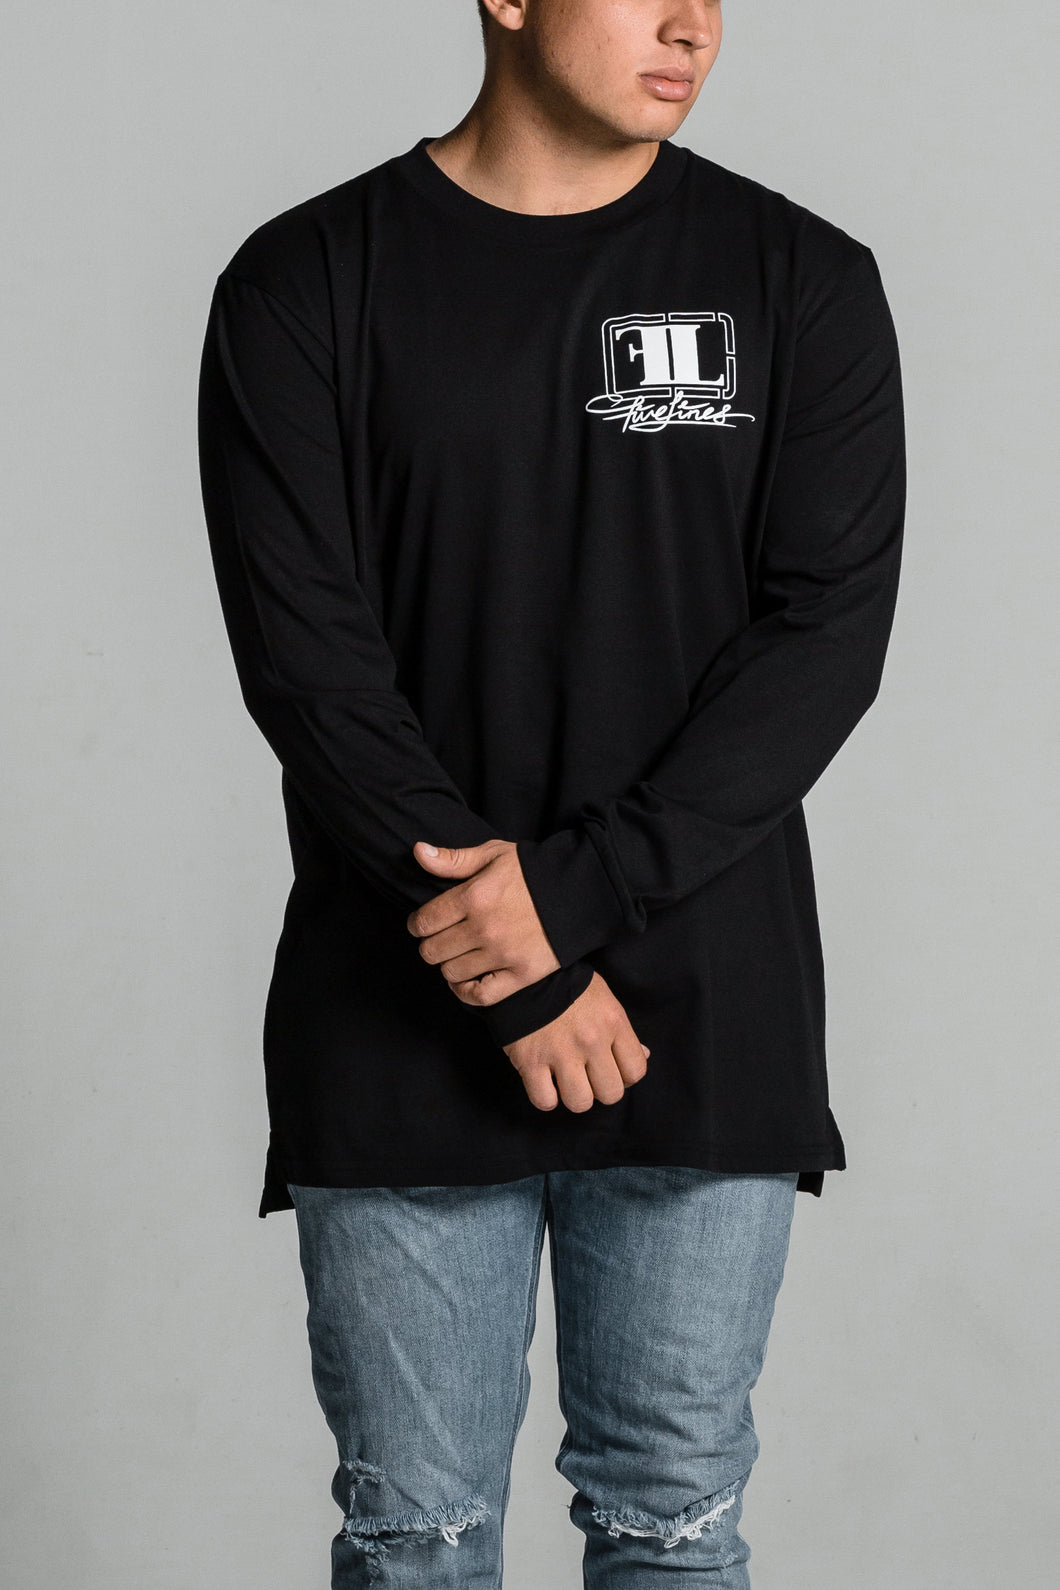 Five Lines 'Insight' Long Sleeve T-Shirt - Black (Relaxed Fit)